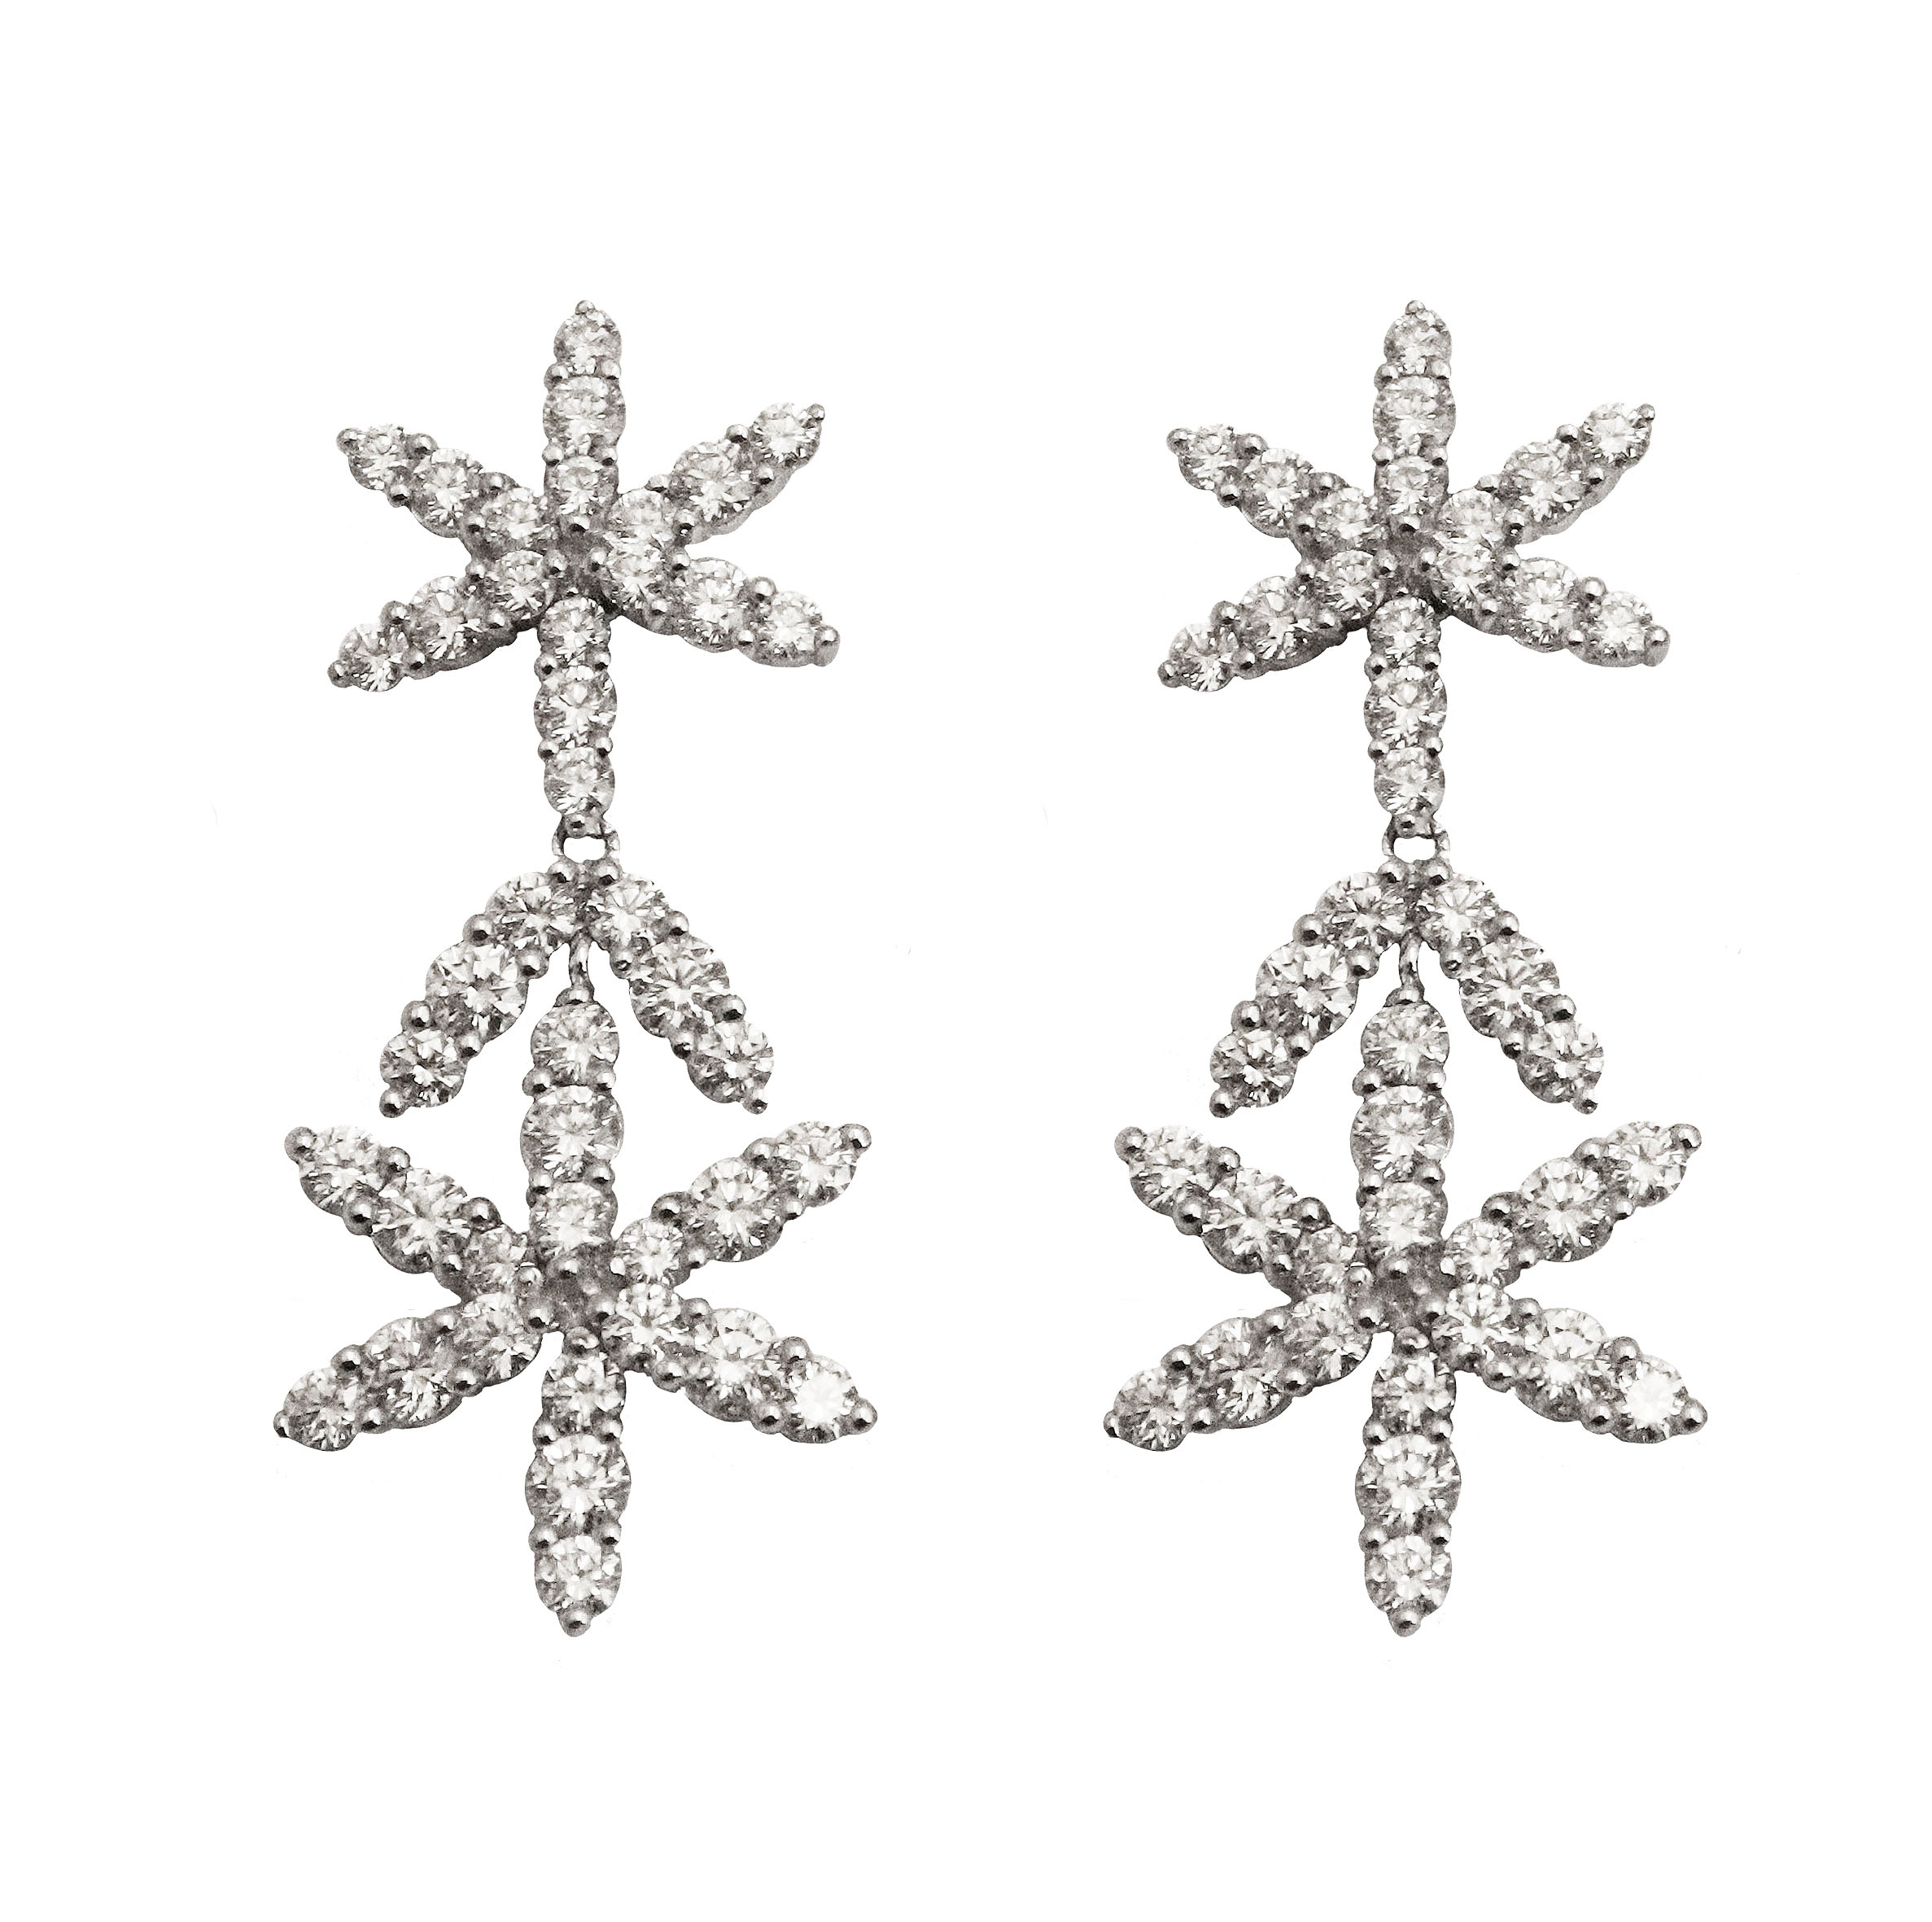 5-pointed Star Diamond Earrings